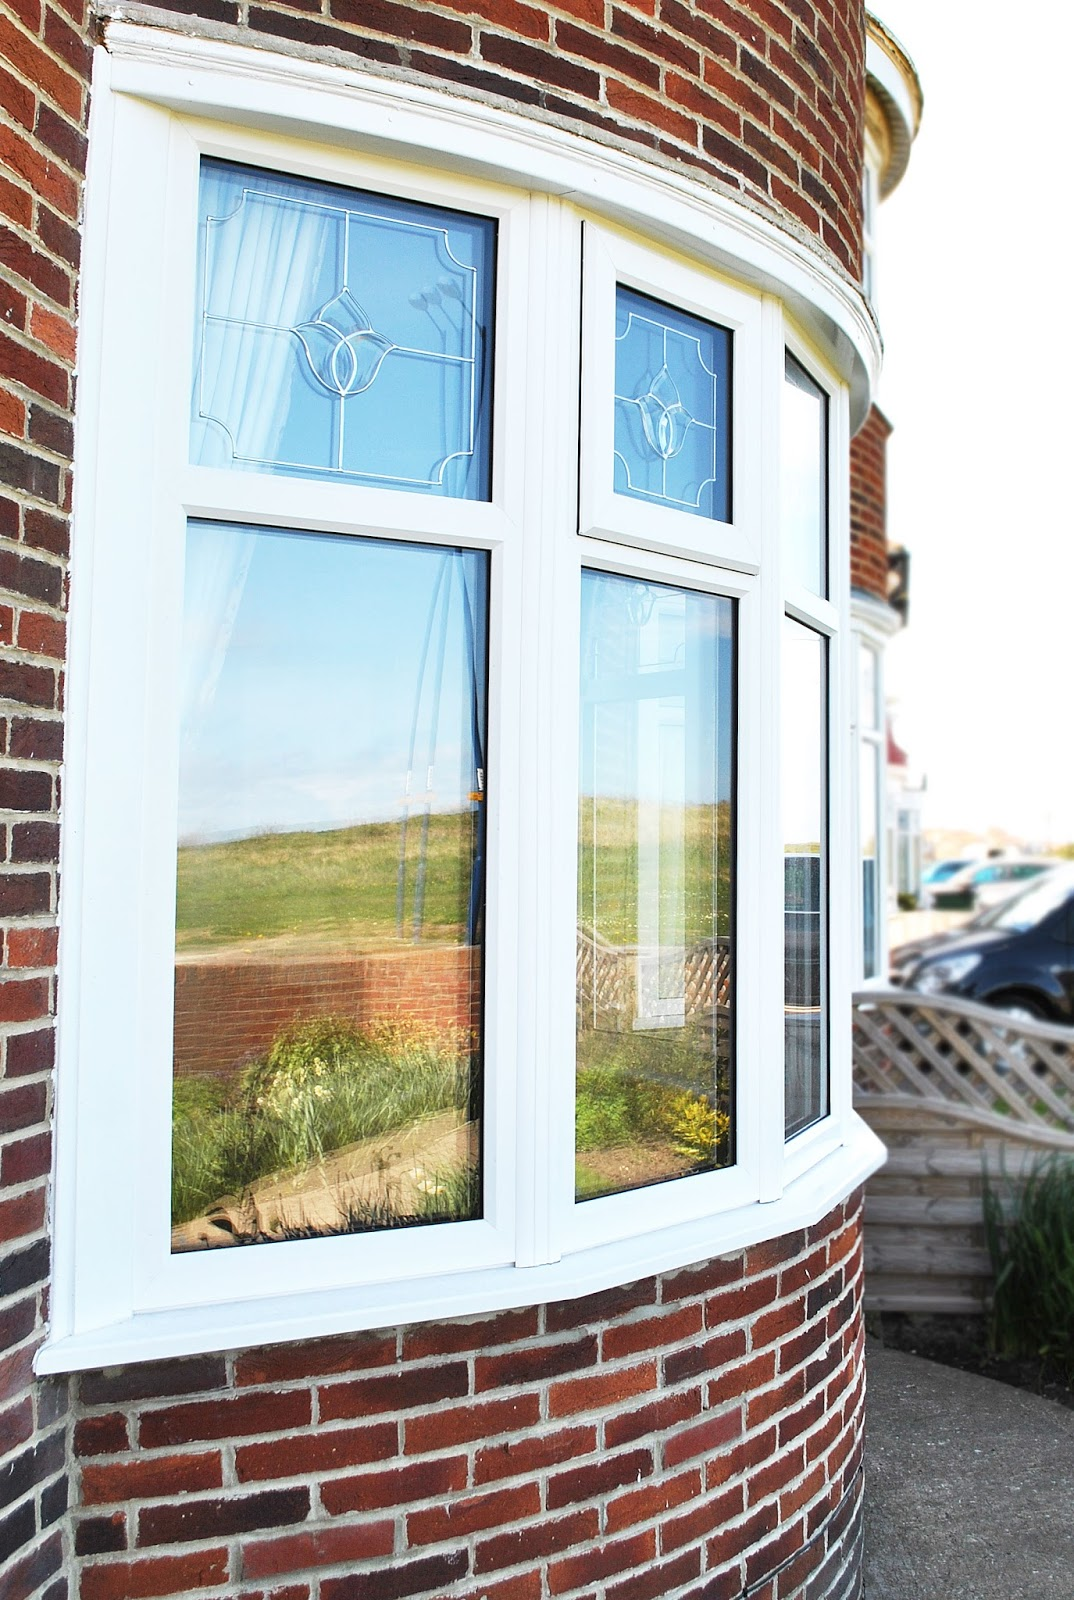 Upvc Windows Home : Full house of rehau upvc windows with top lights feels